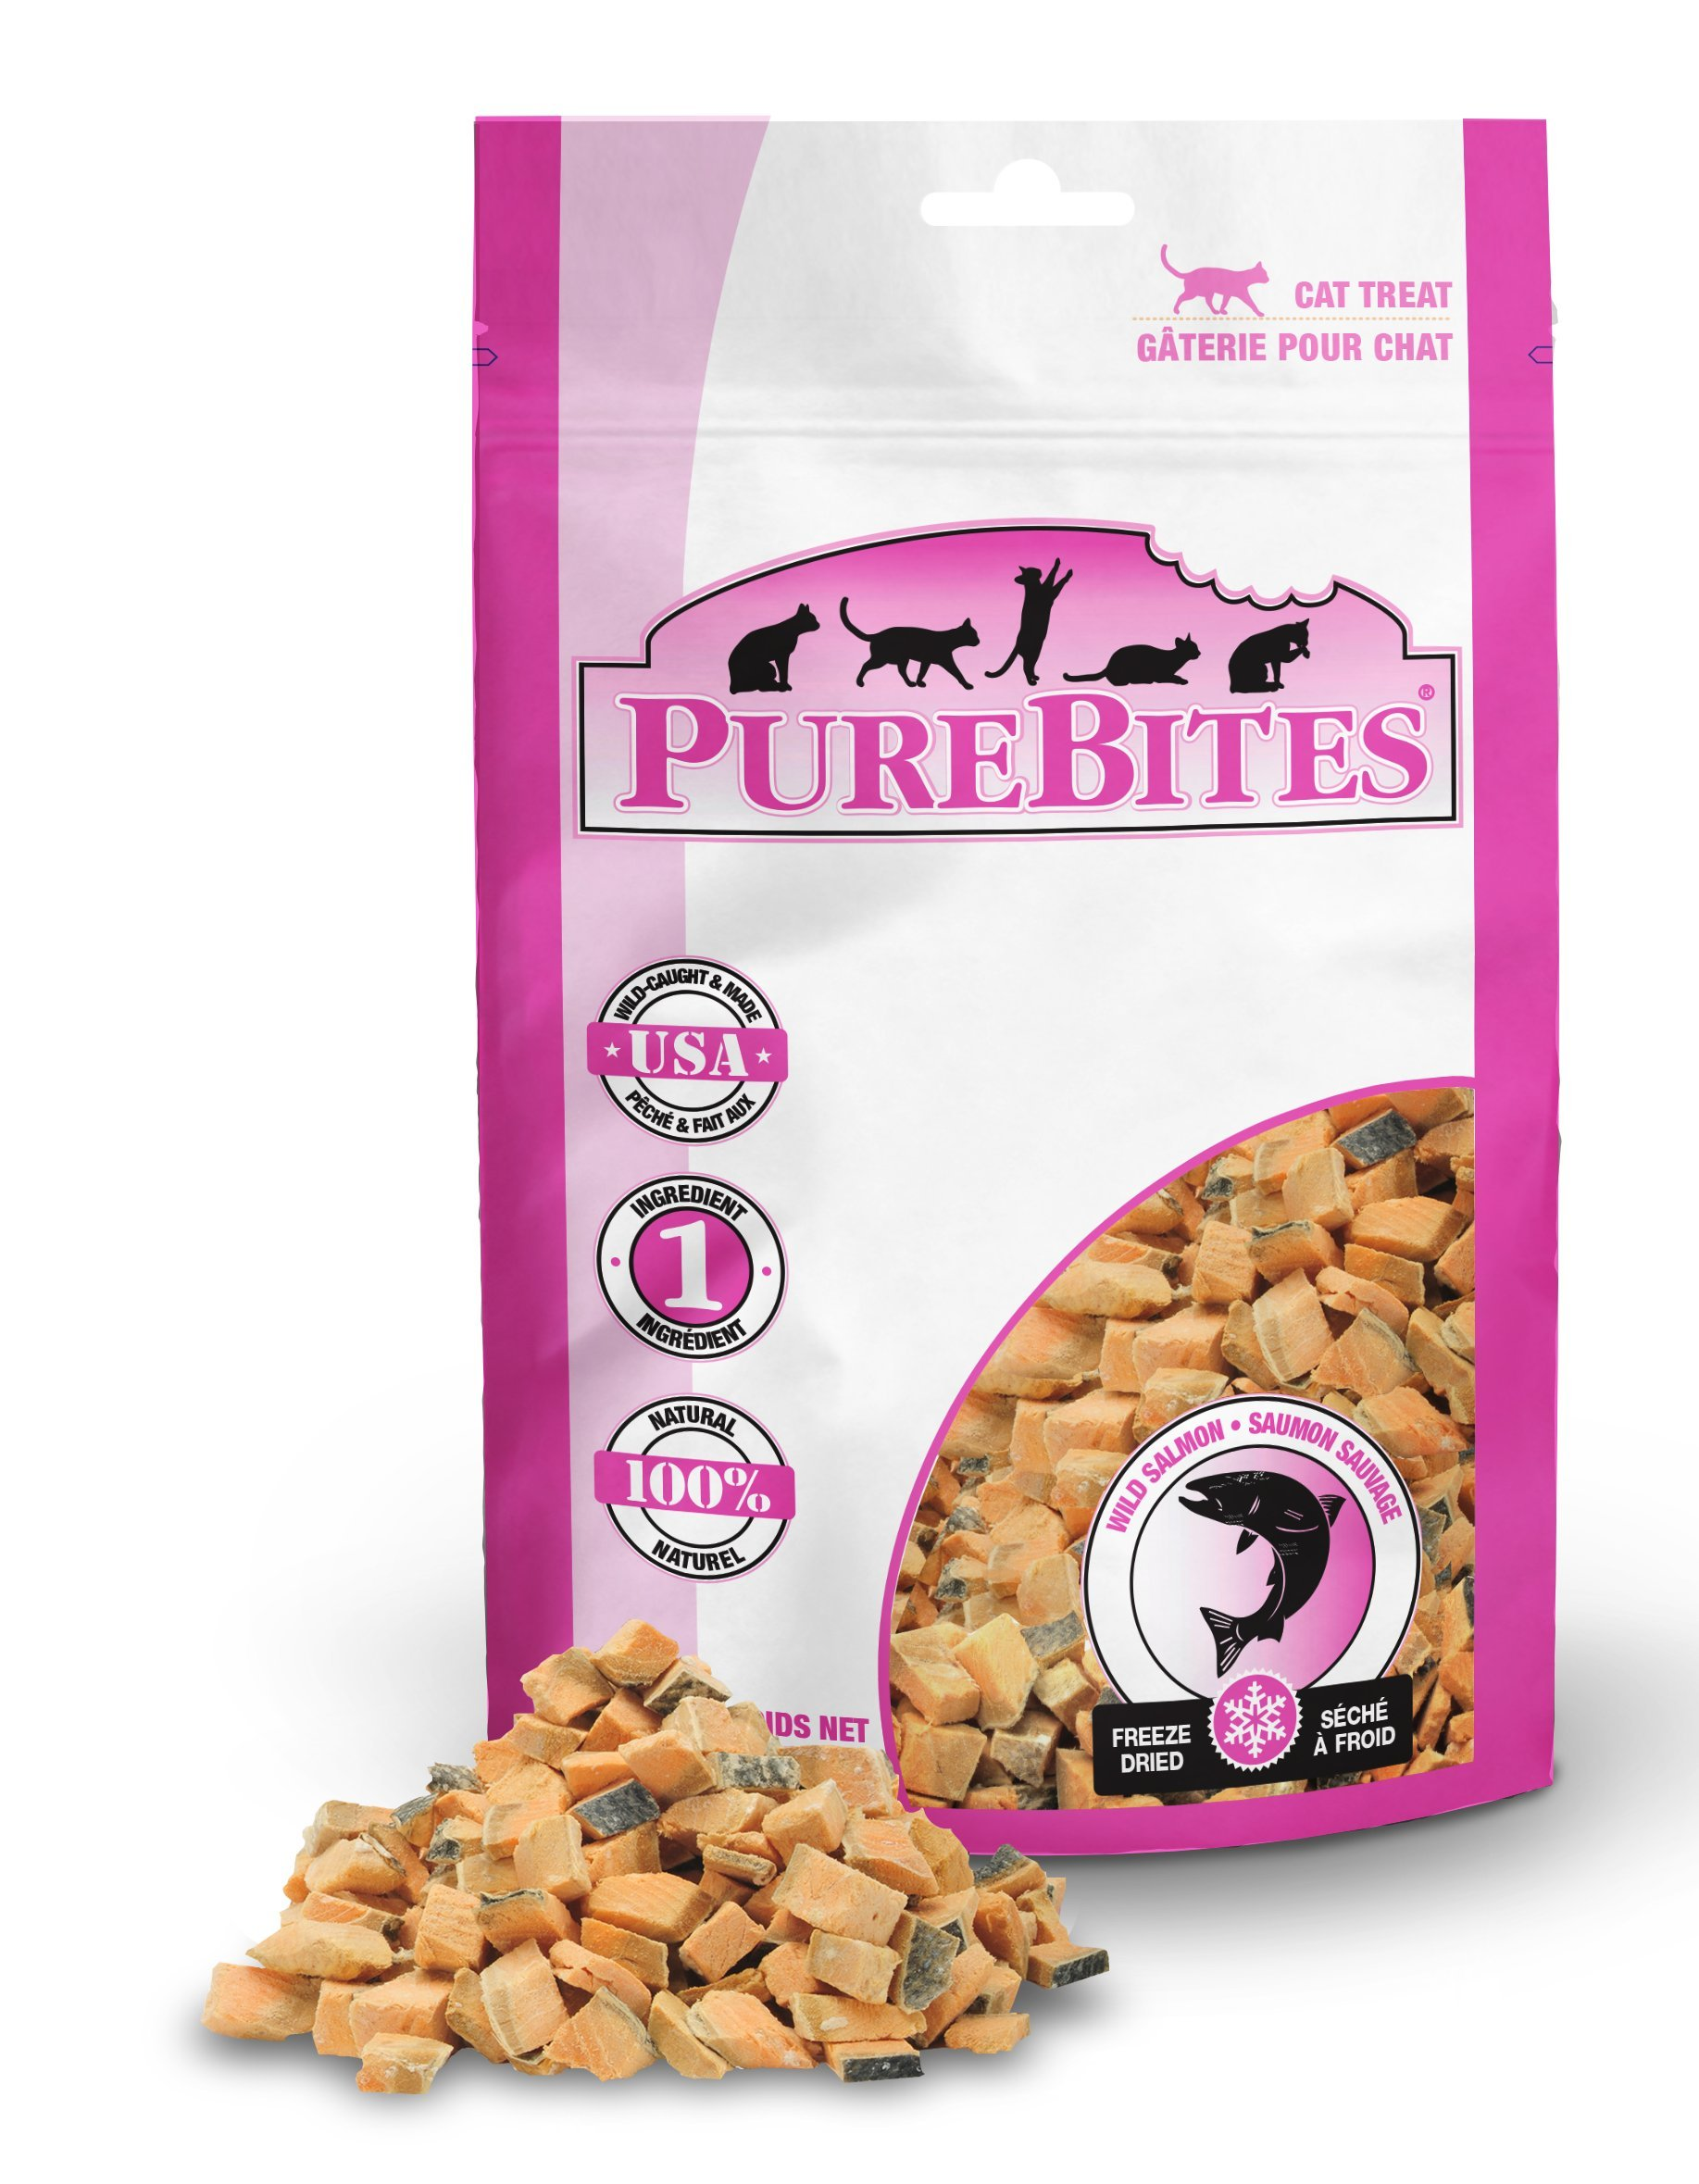 Purebites Salmon For Cats, 0.92Oz / 26G - Value Size, 14 Pack by PureBites